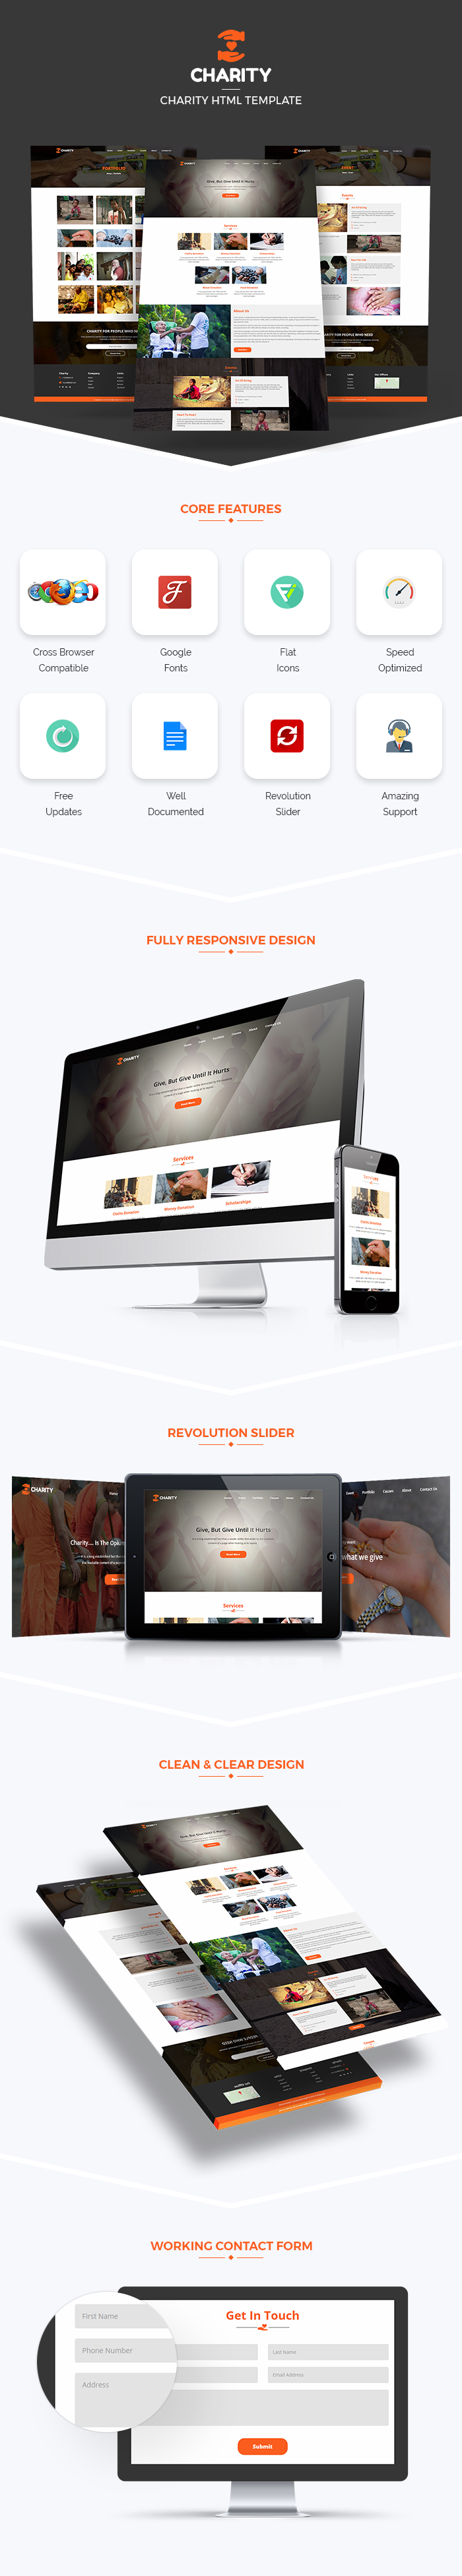 Charitable Trust HTML Website Templates